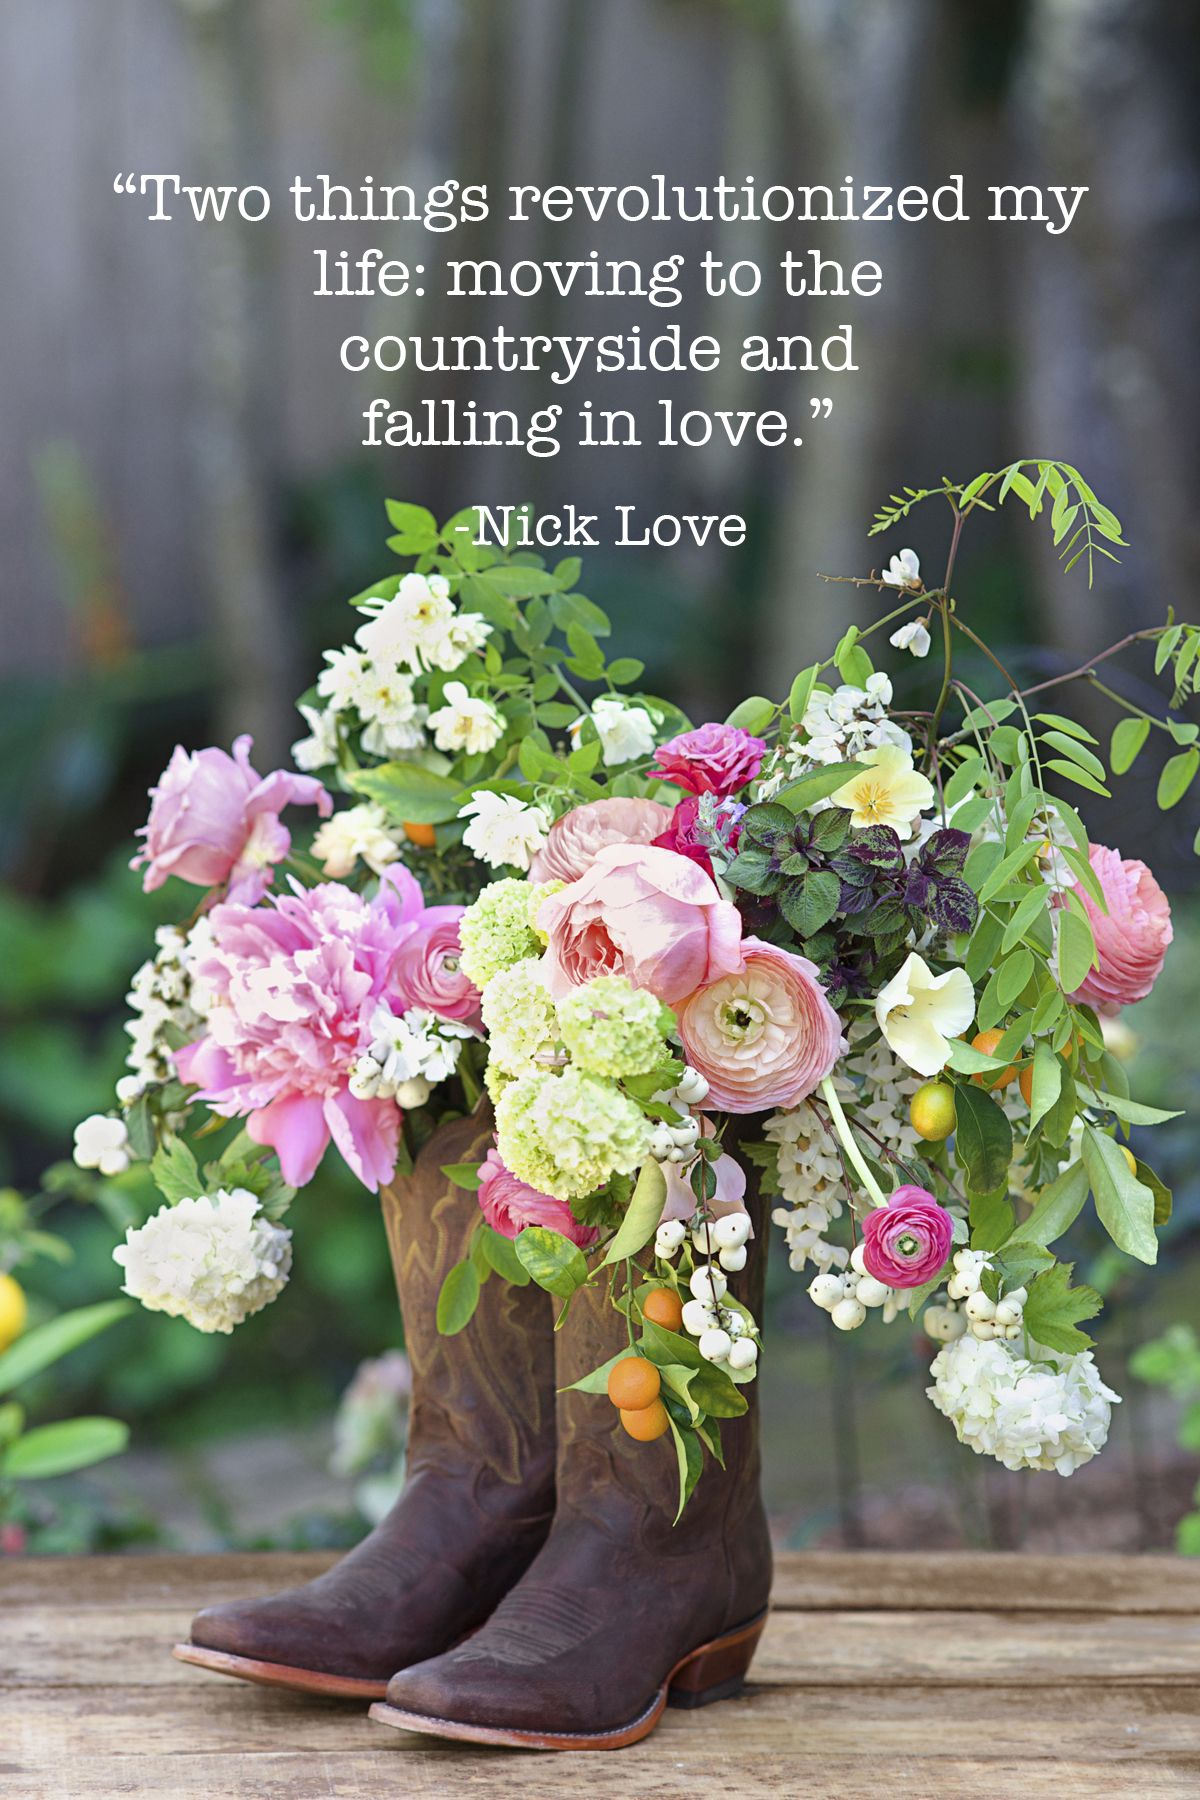 Quotes That Will Make You Appreciate Simple Country Pleasures